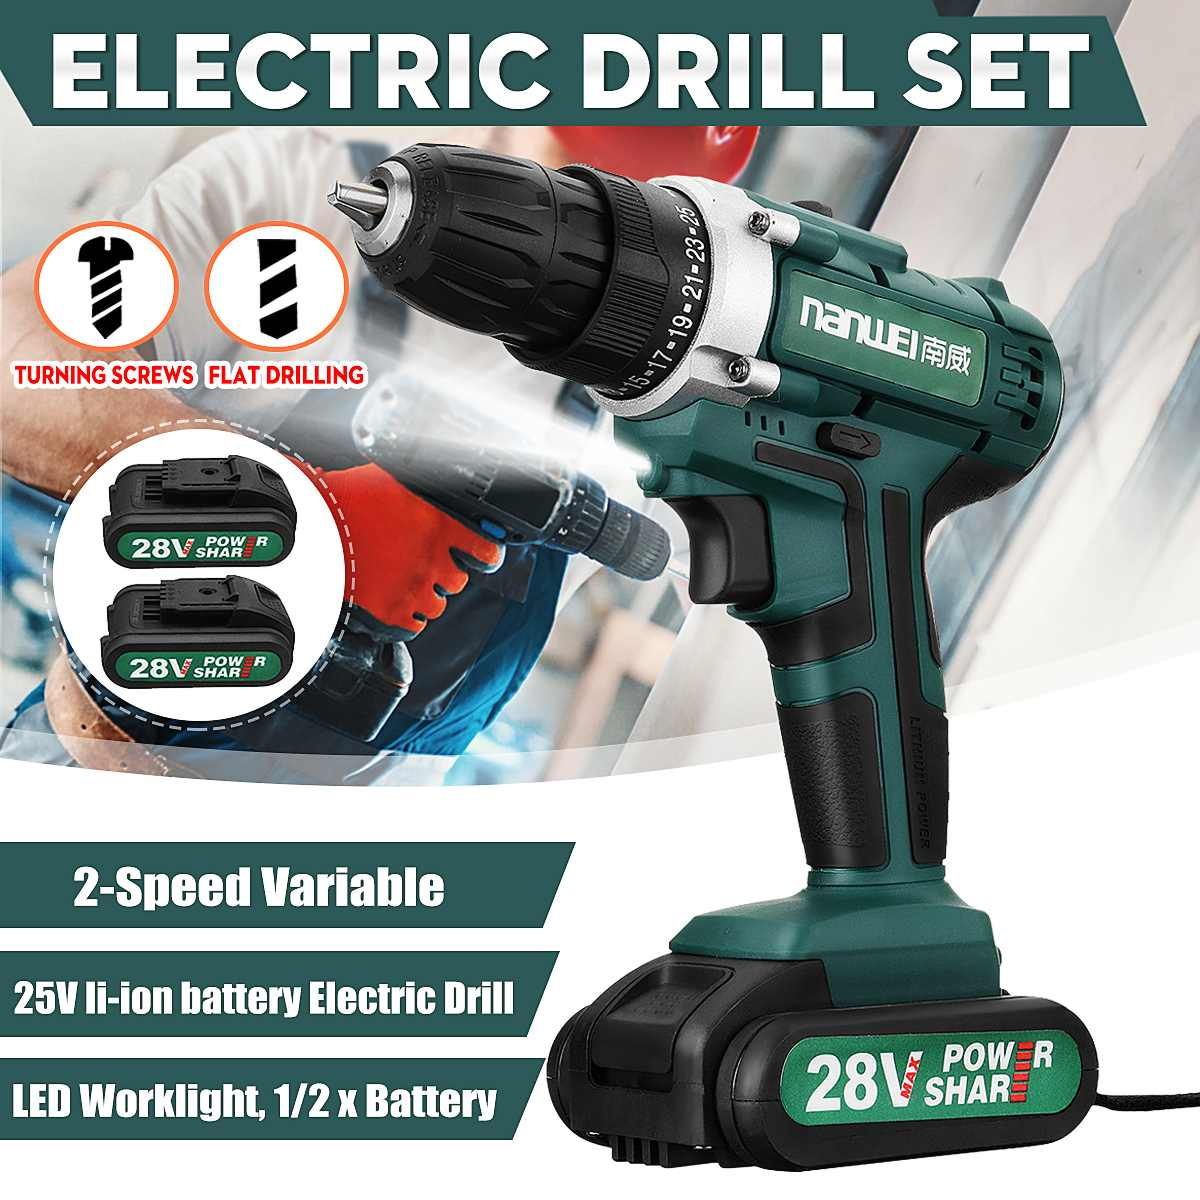 28V Electric Drill Two Speed Lithium Battery Rechargeable Cordless Drill Multi-function Electric Cordless Screwdriver28V Electric Drill Two Speed Lithium Battery Rechargeable Cordless Drill Multi-function Electric Cordless Screwdriver